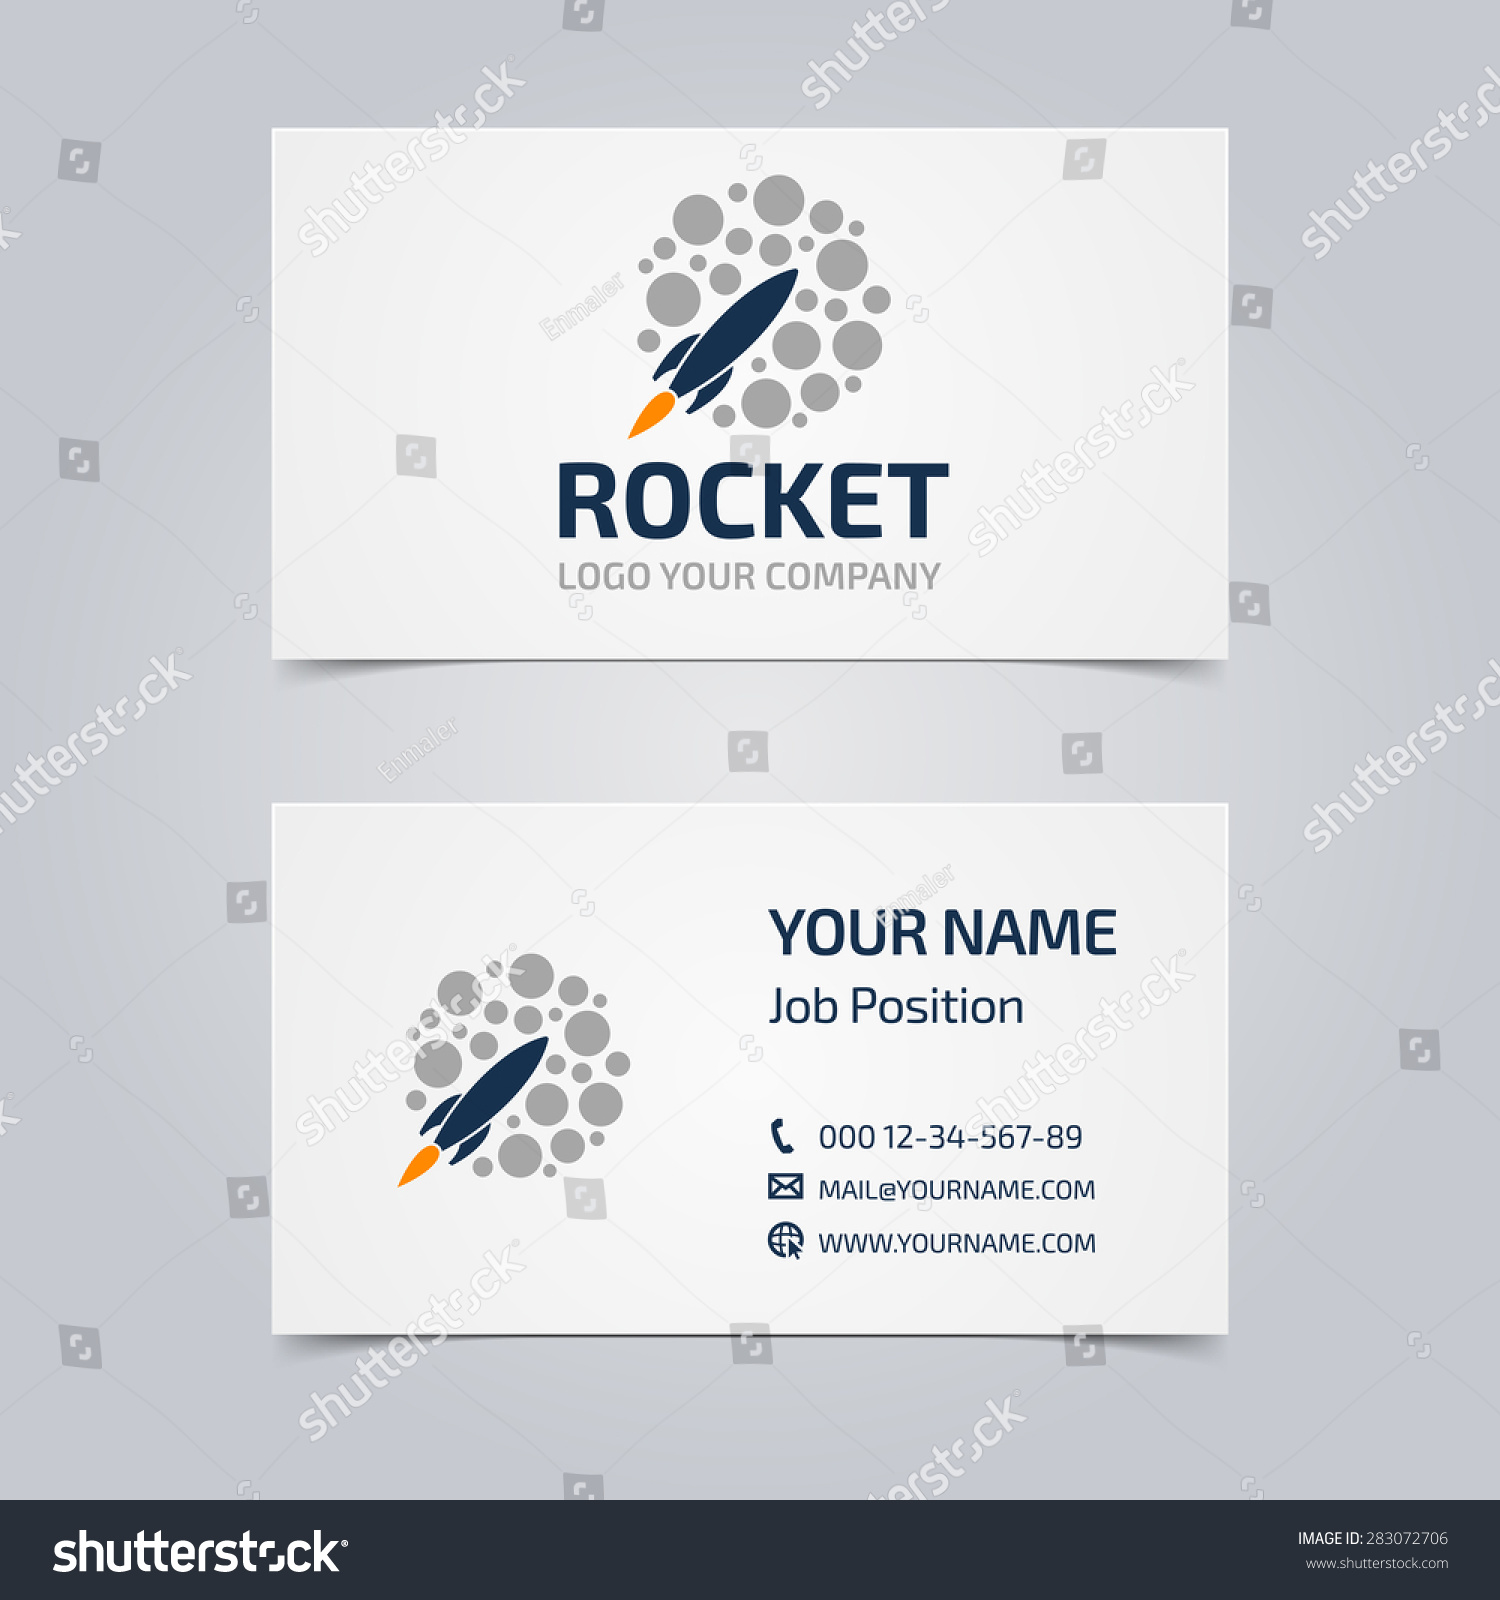 Business Card Picture Rocket Template Corporate Stock Vector ...